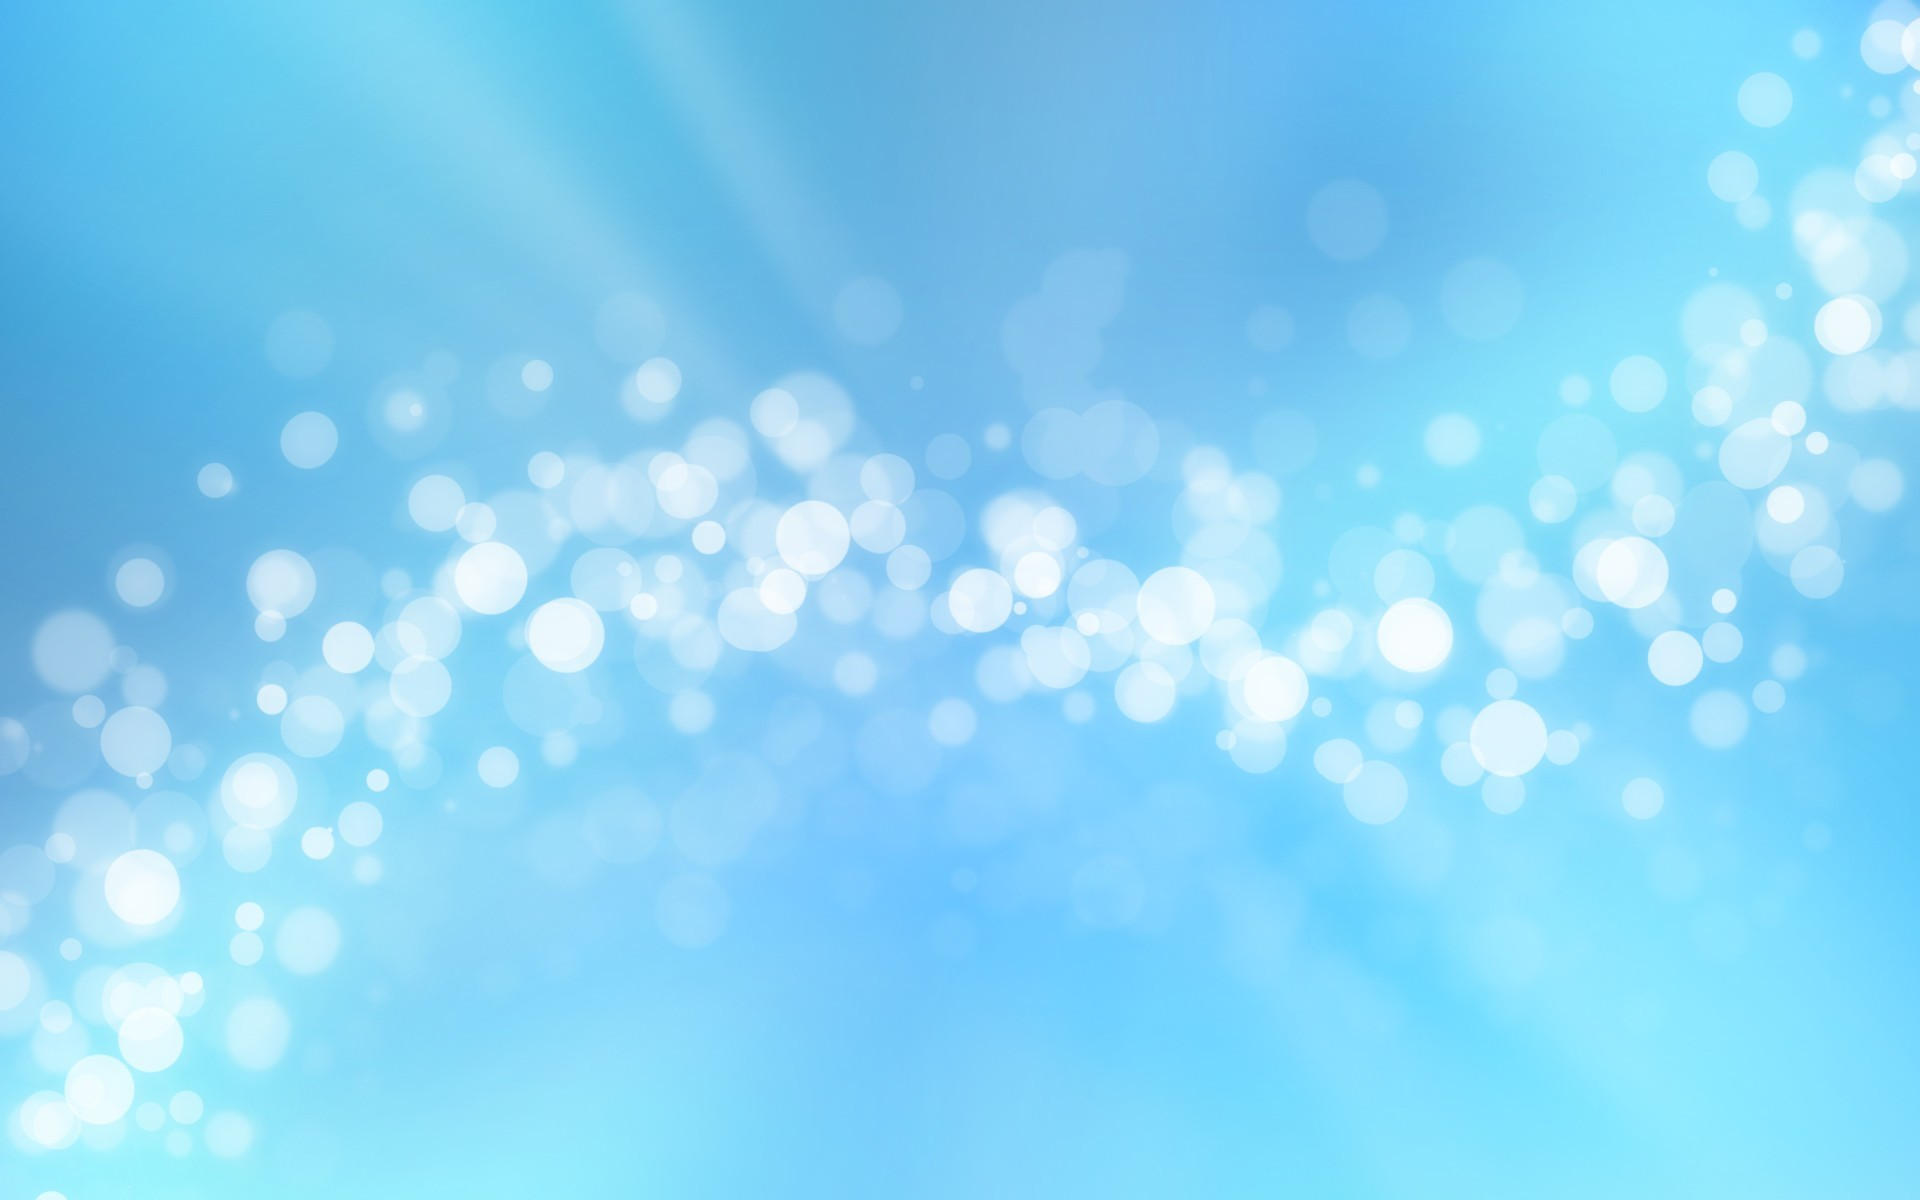 1920x1200 Abstract Light Blue Wallpaper 2643